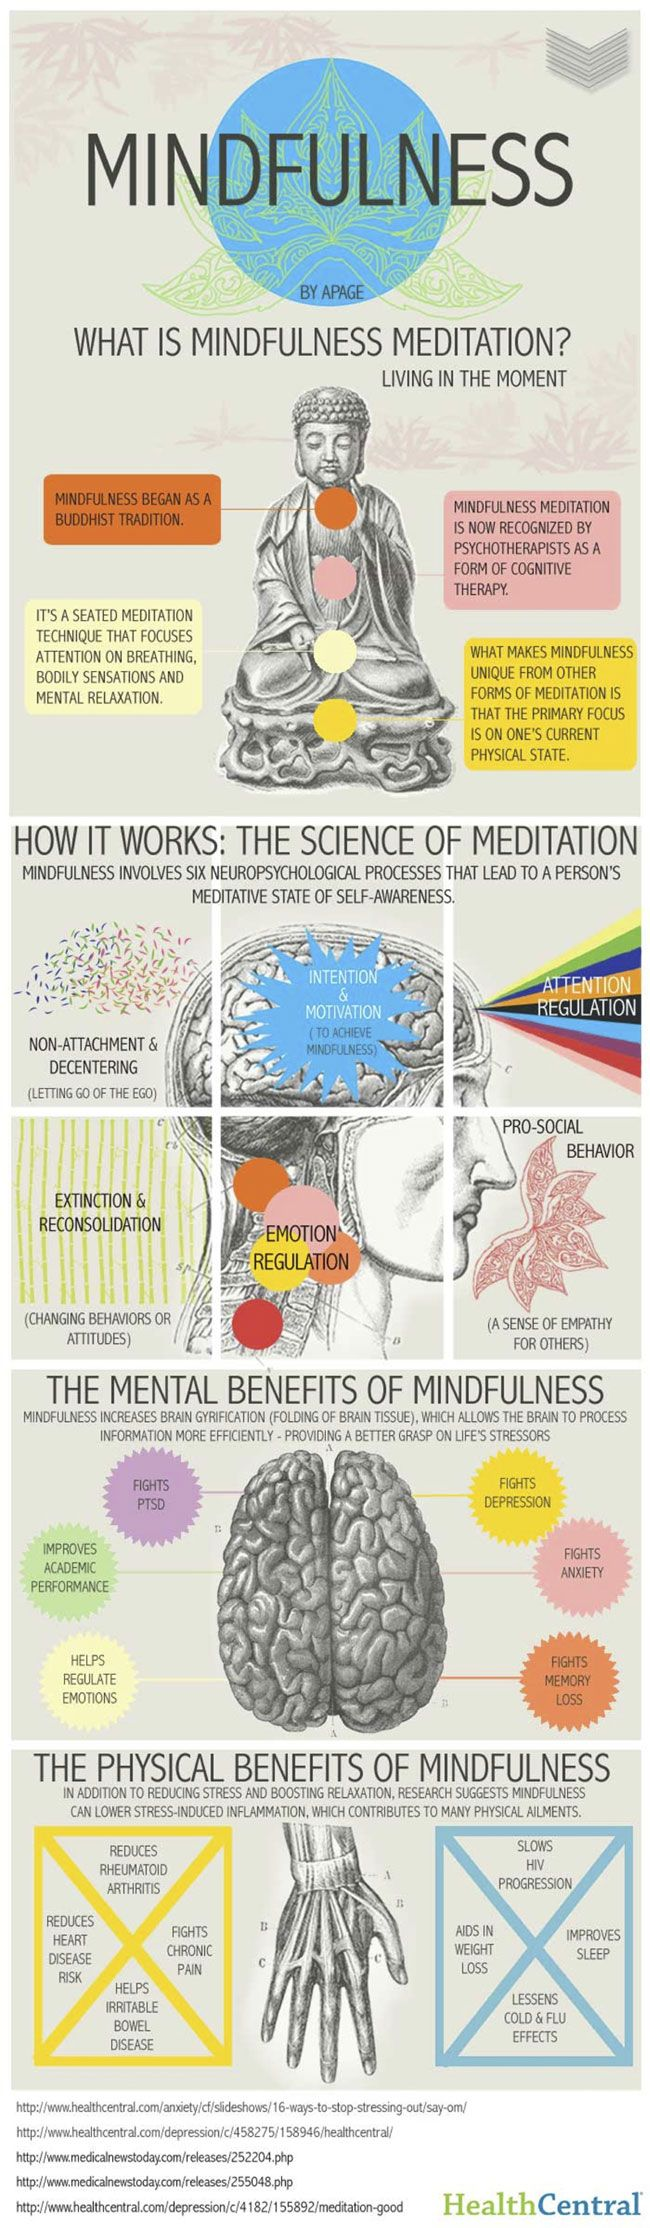 As you can see from the information presented here, the mental and physical benefits of Mindfulness show great promise for everyone.